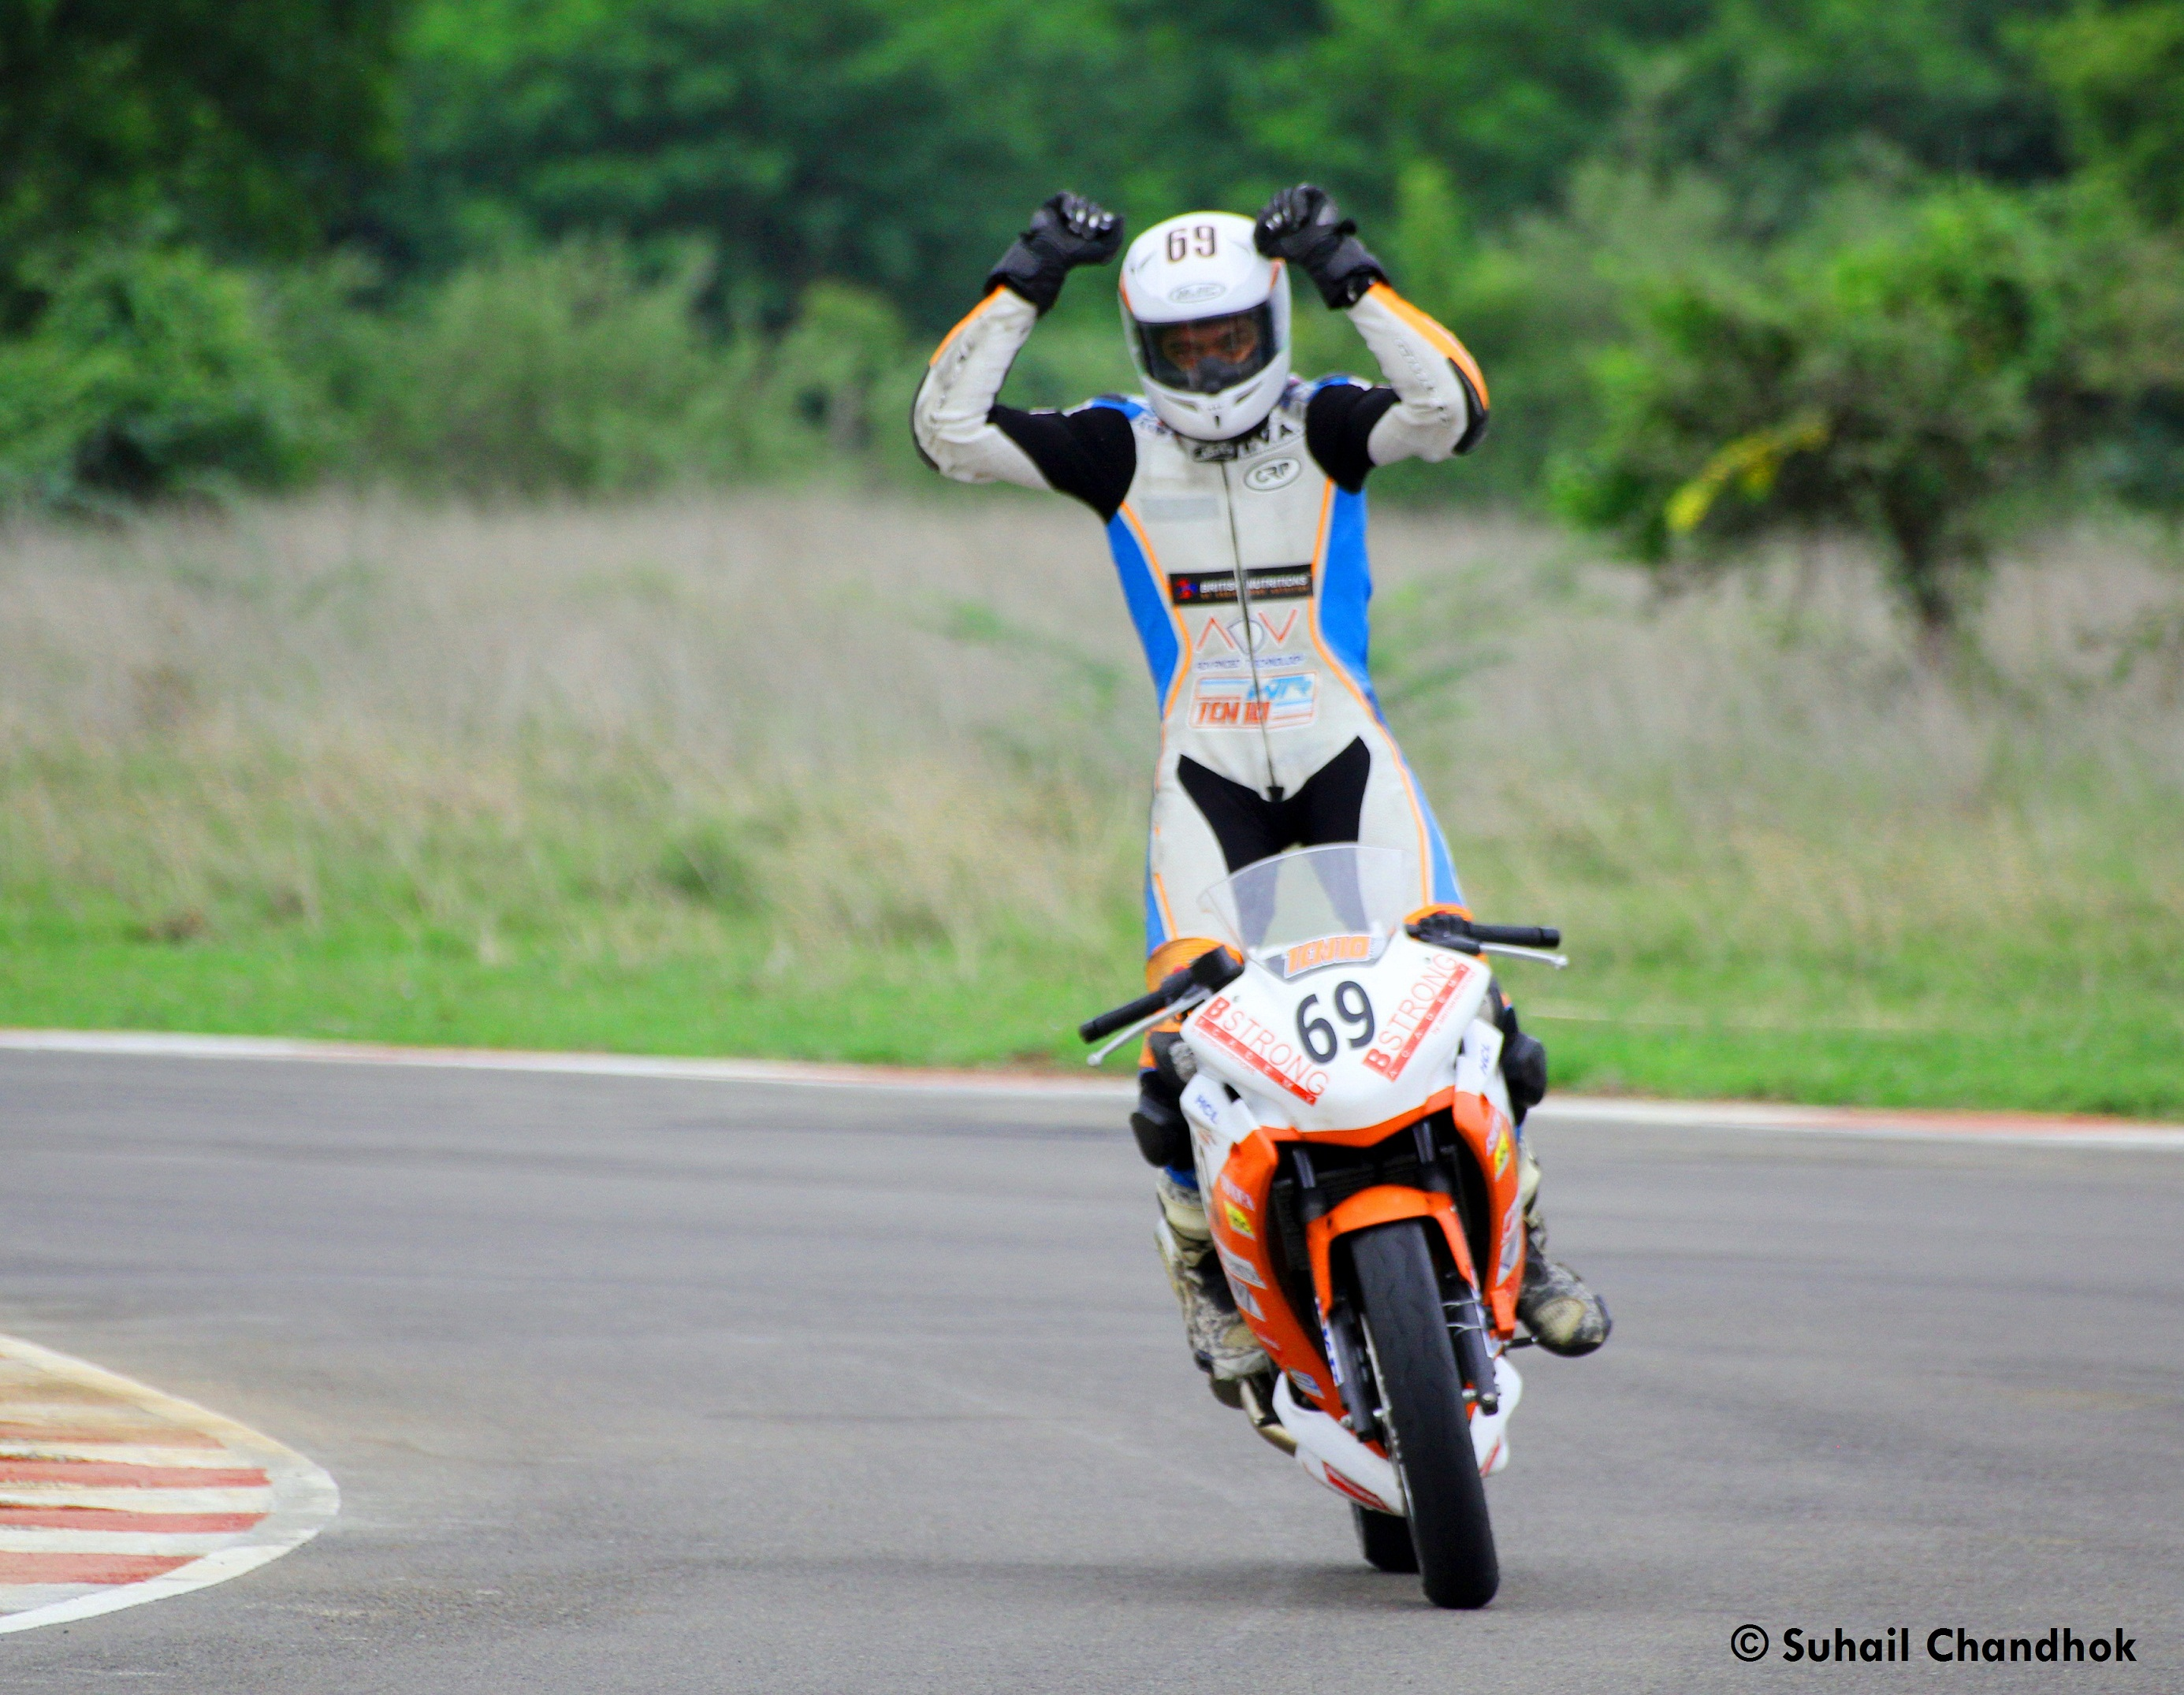 Sarath-Kumar-celebrates-his-win-in-the-Honda-CBR-250R-Open-category